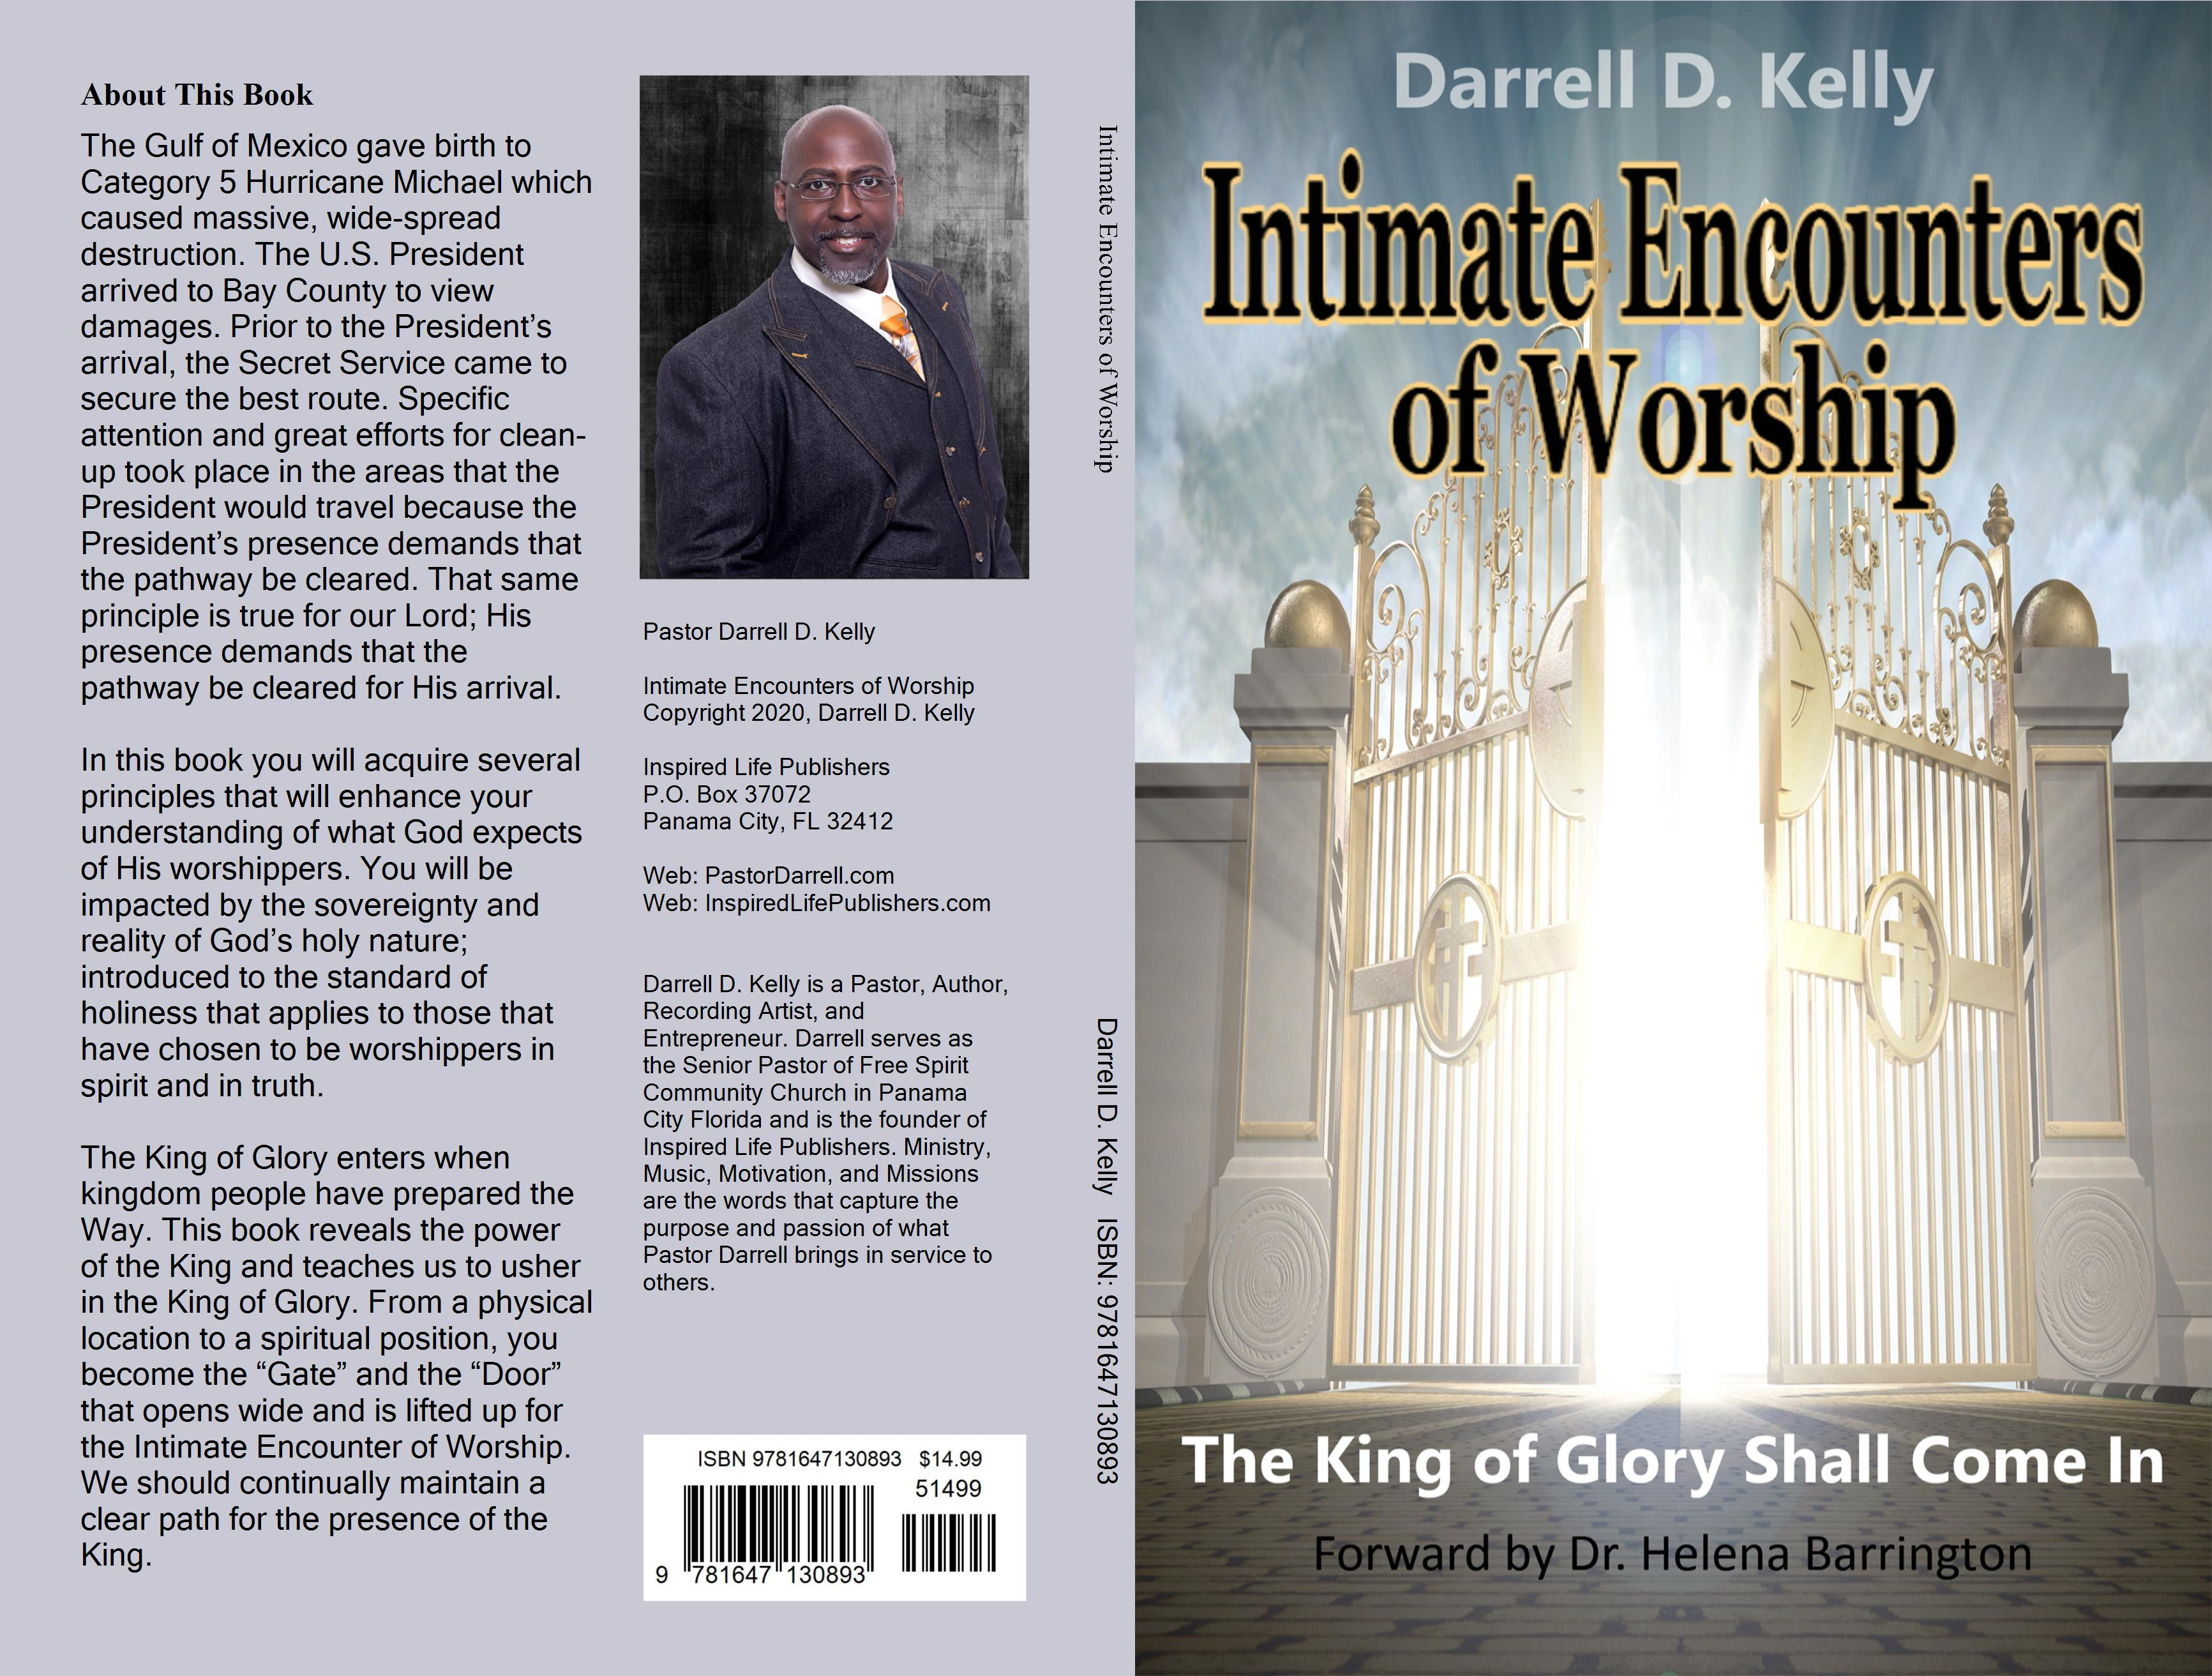 Intimate Encounters of Worship cover image